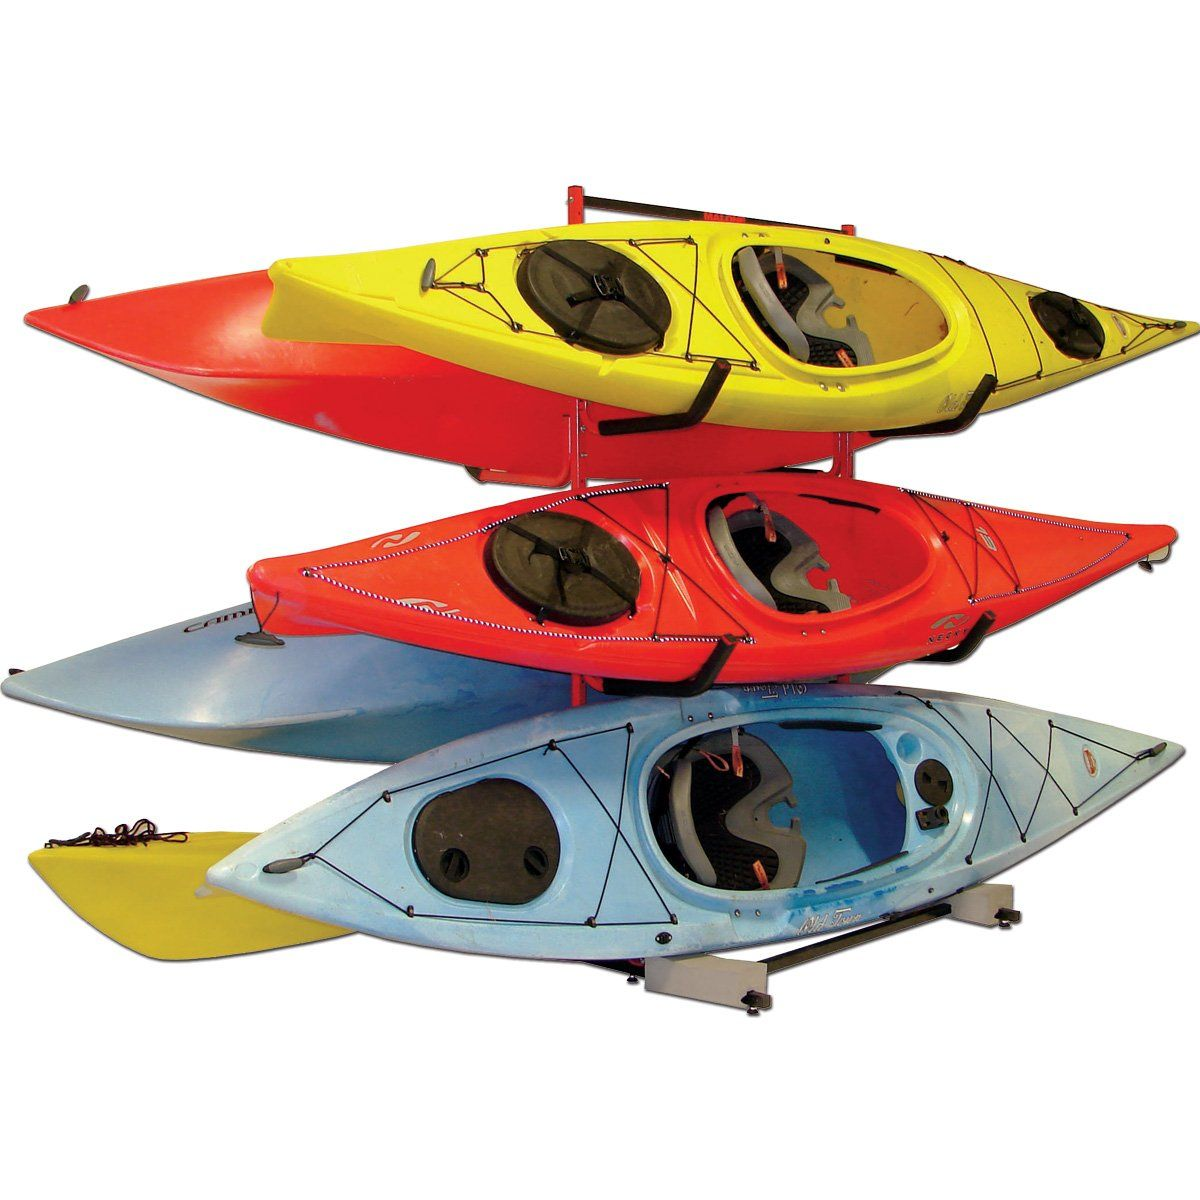 Canoe Storage Malone Auto Racks Fs 6 Kayak Storage Rack System You Can Get Even More Information By Clicking T Kayak Storage Rack Kayak Storage Kayaking